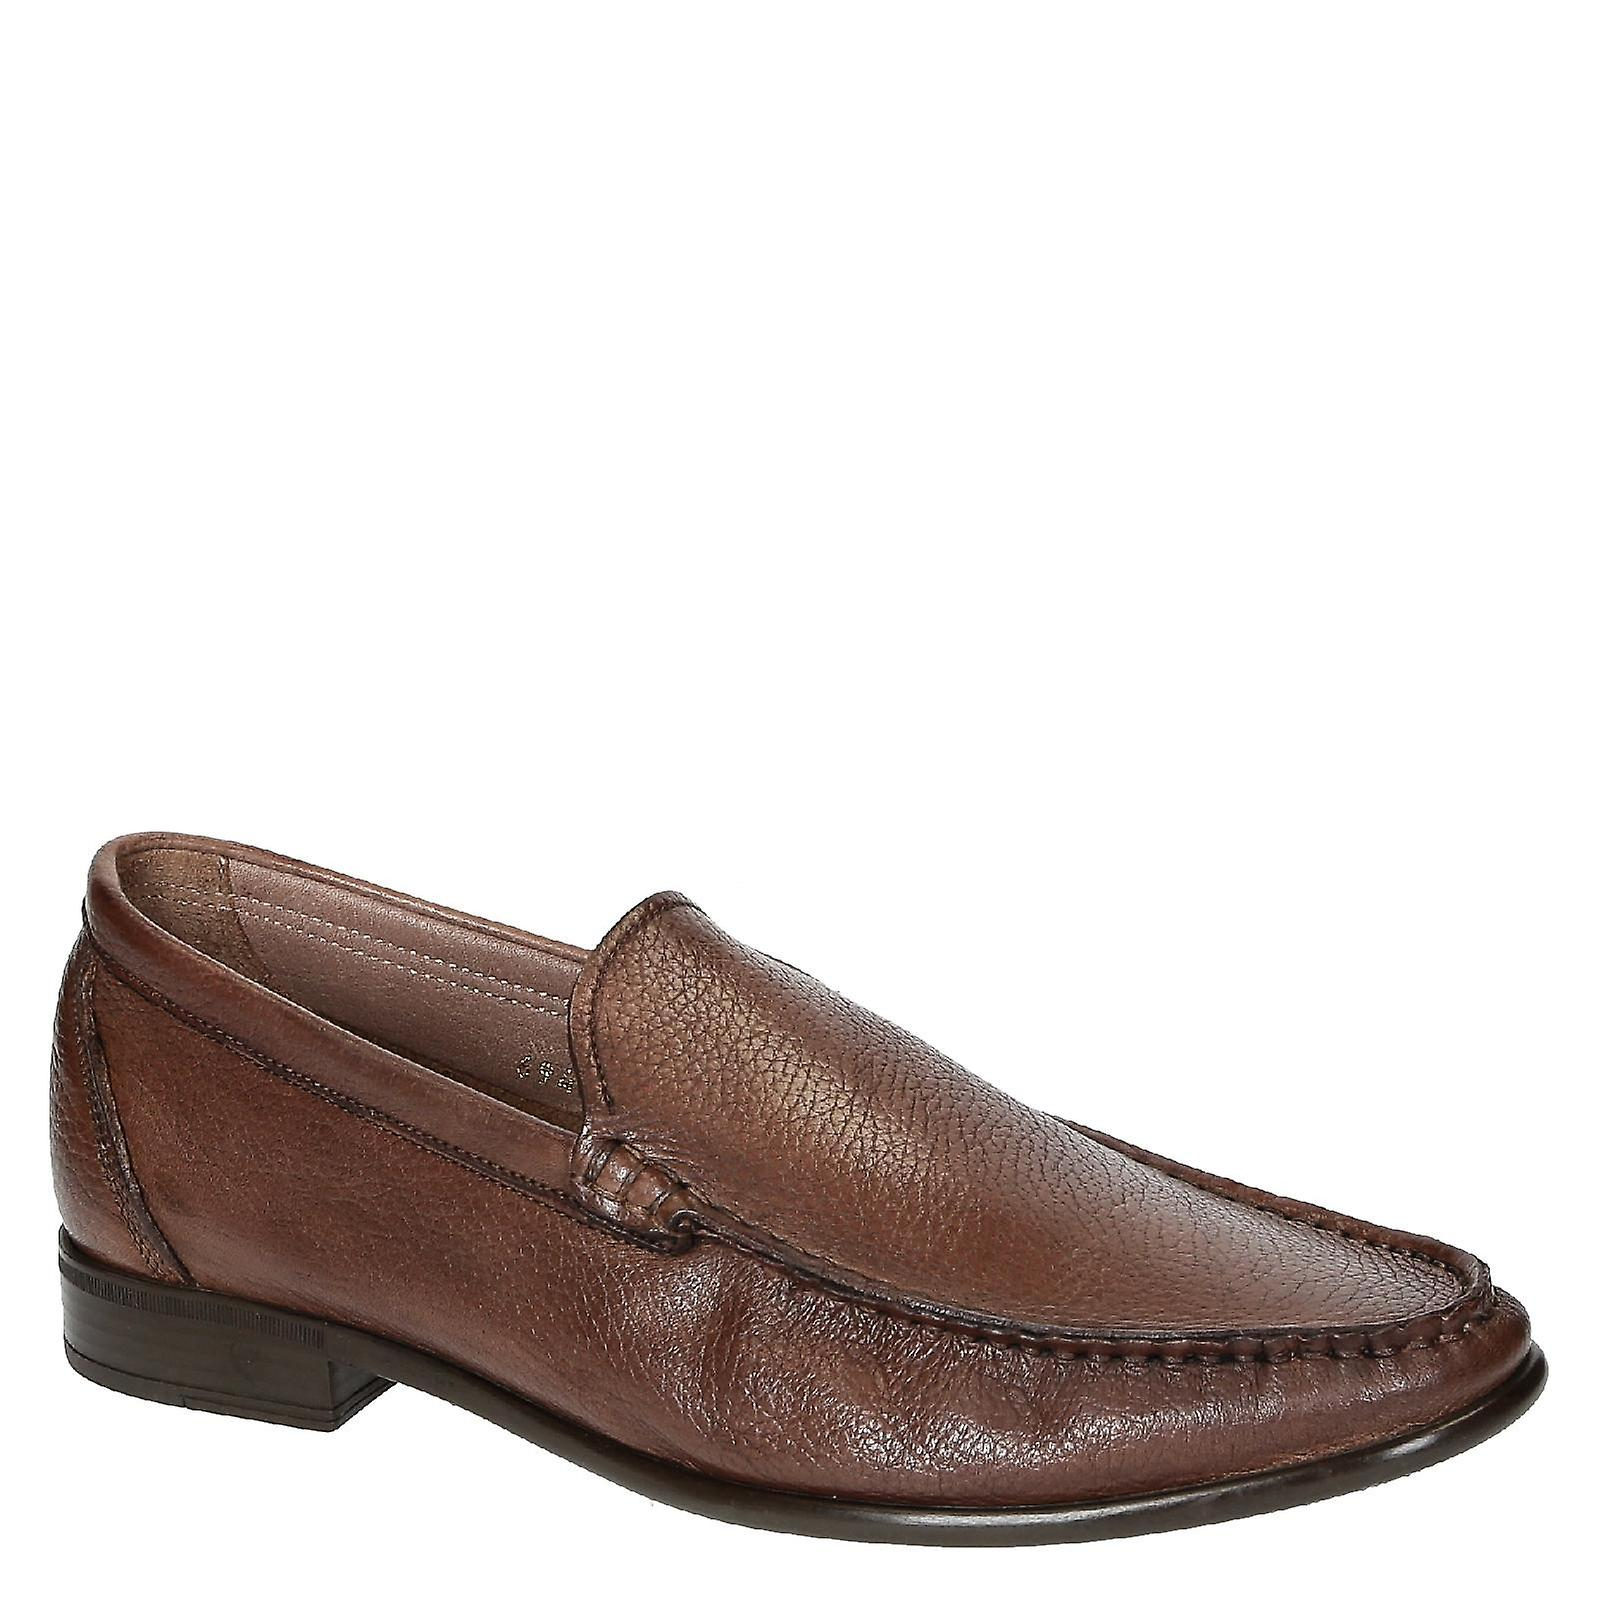 Brandy full grain leather handmade men loafers for men handmade c0fddb